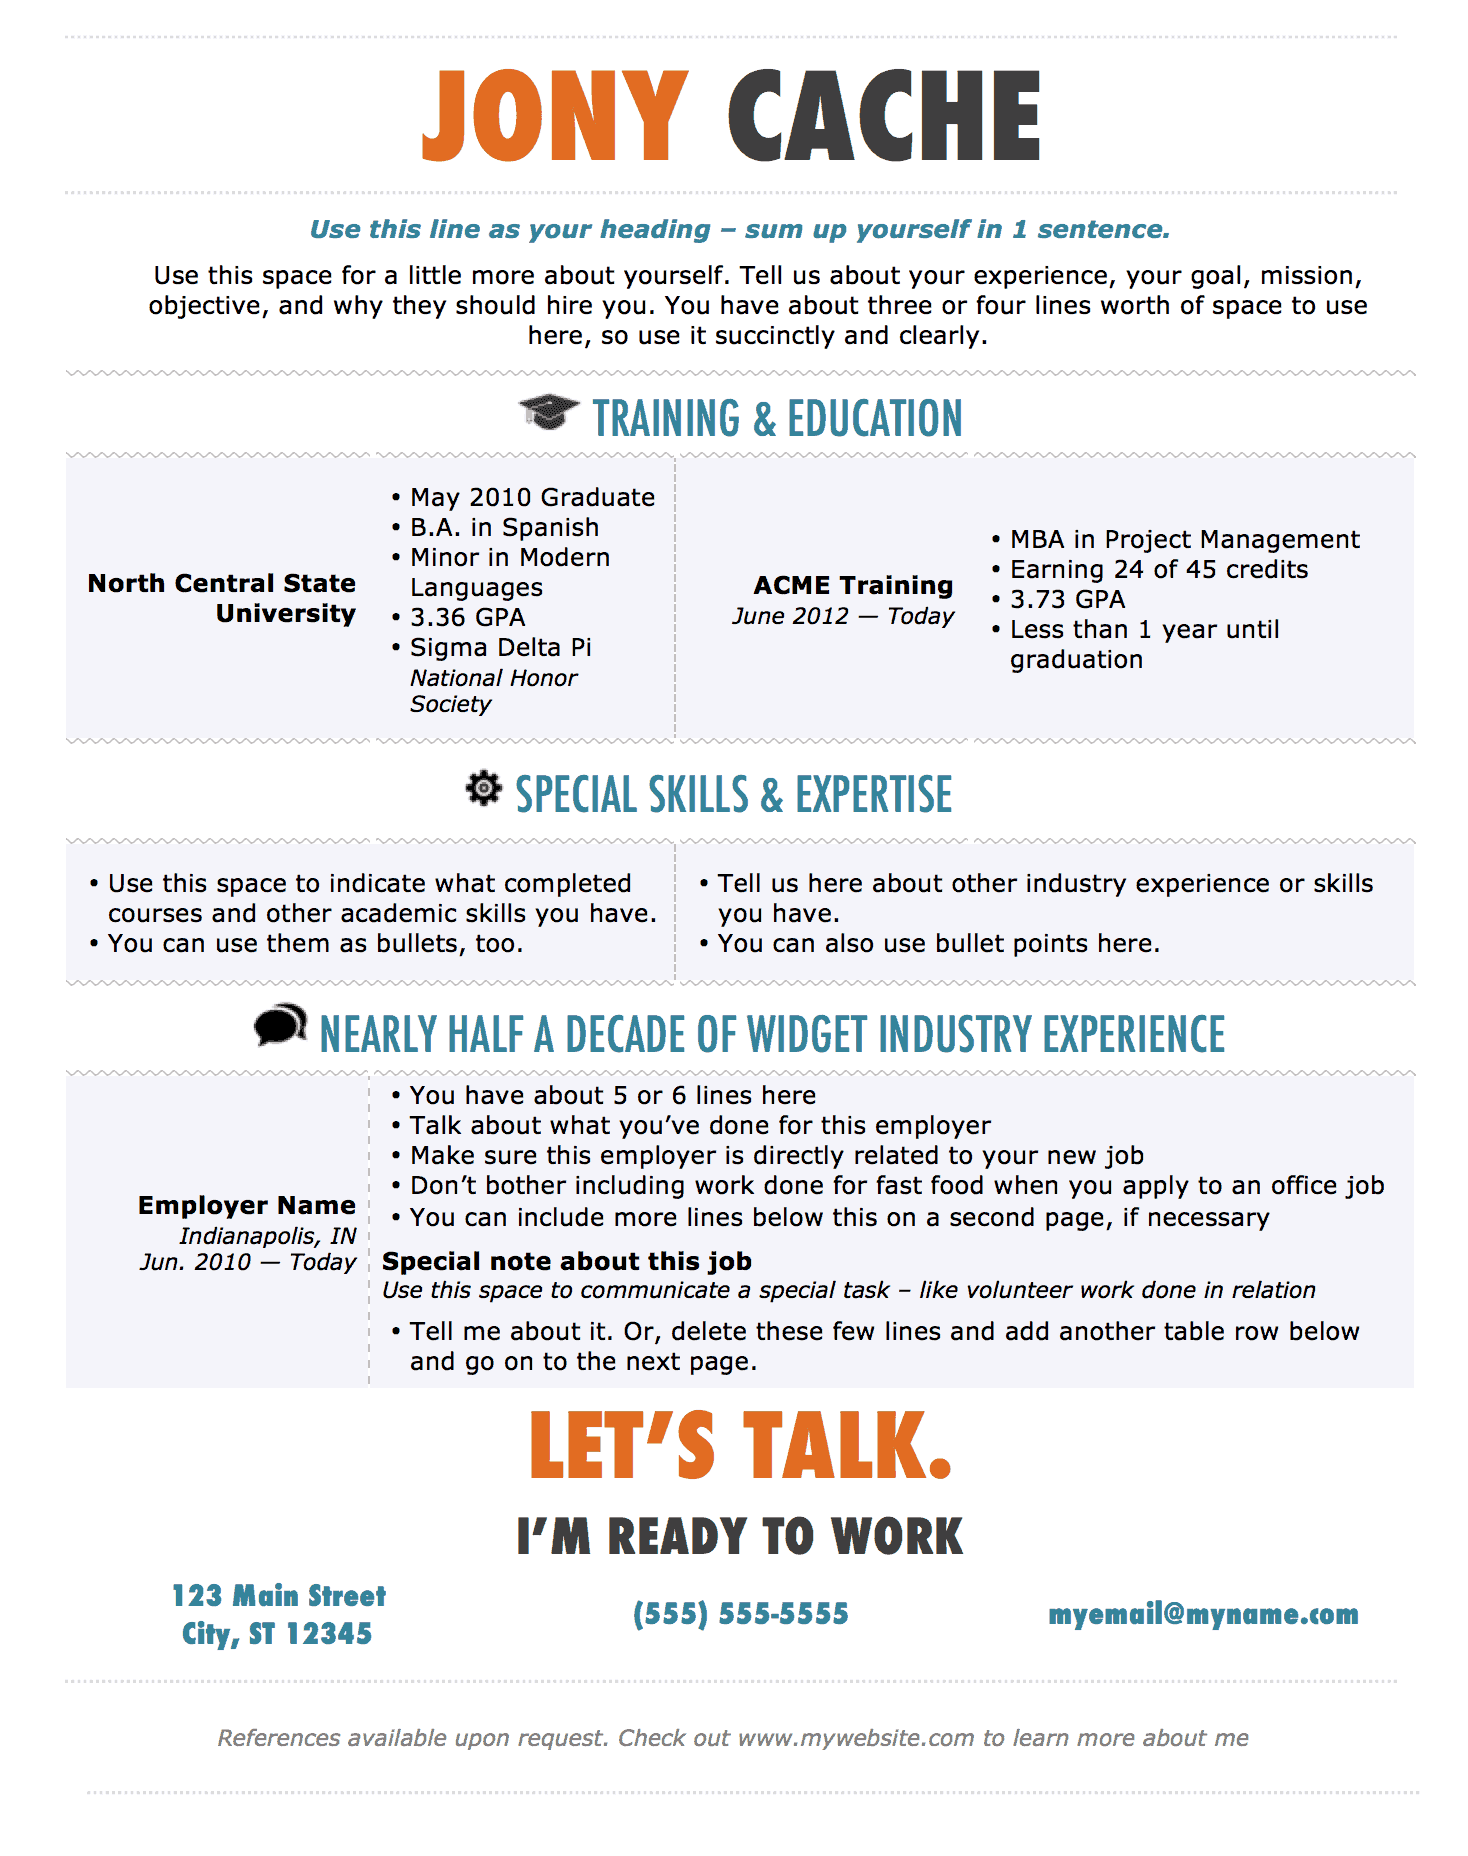 Resume Samples 2014. Skylogic 2014 Samples Resume Splendid Design ...